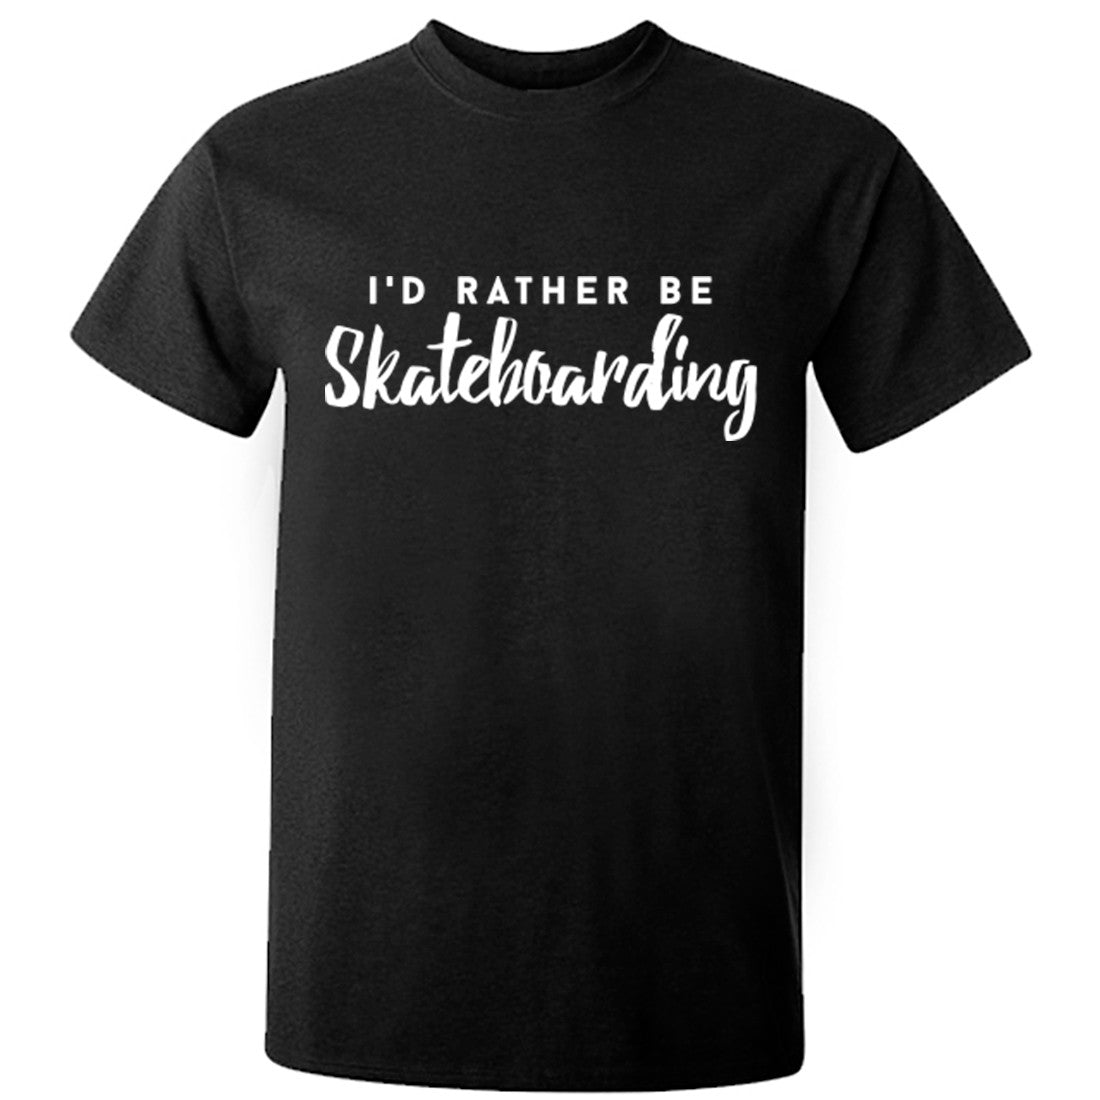 I'd Rather Be Skateboarding unisex t-shirt K0208